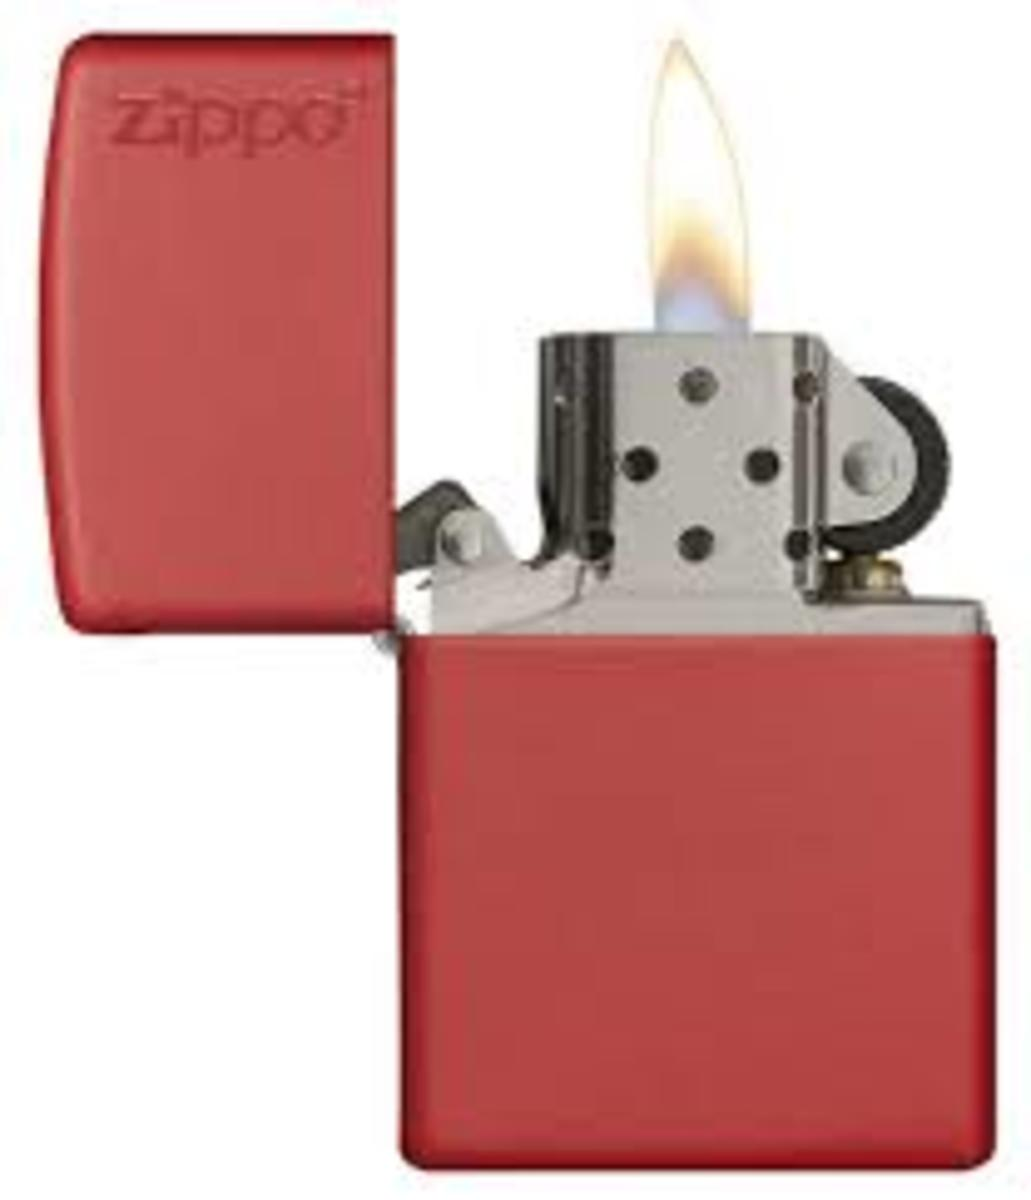 The Ultimate Lighter Reviews: Including Pros & Cons  Facts  Hacks